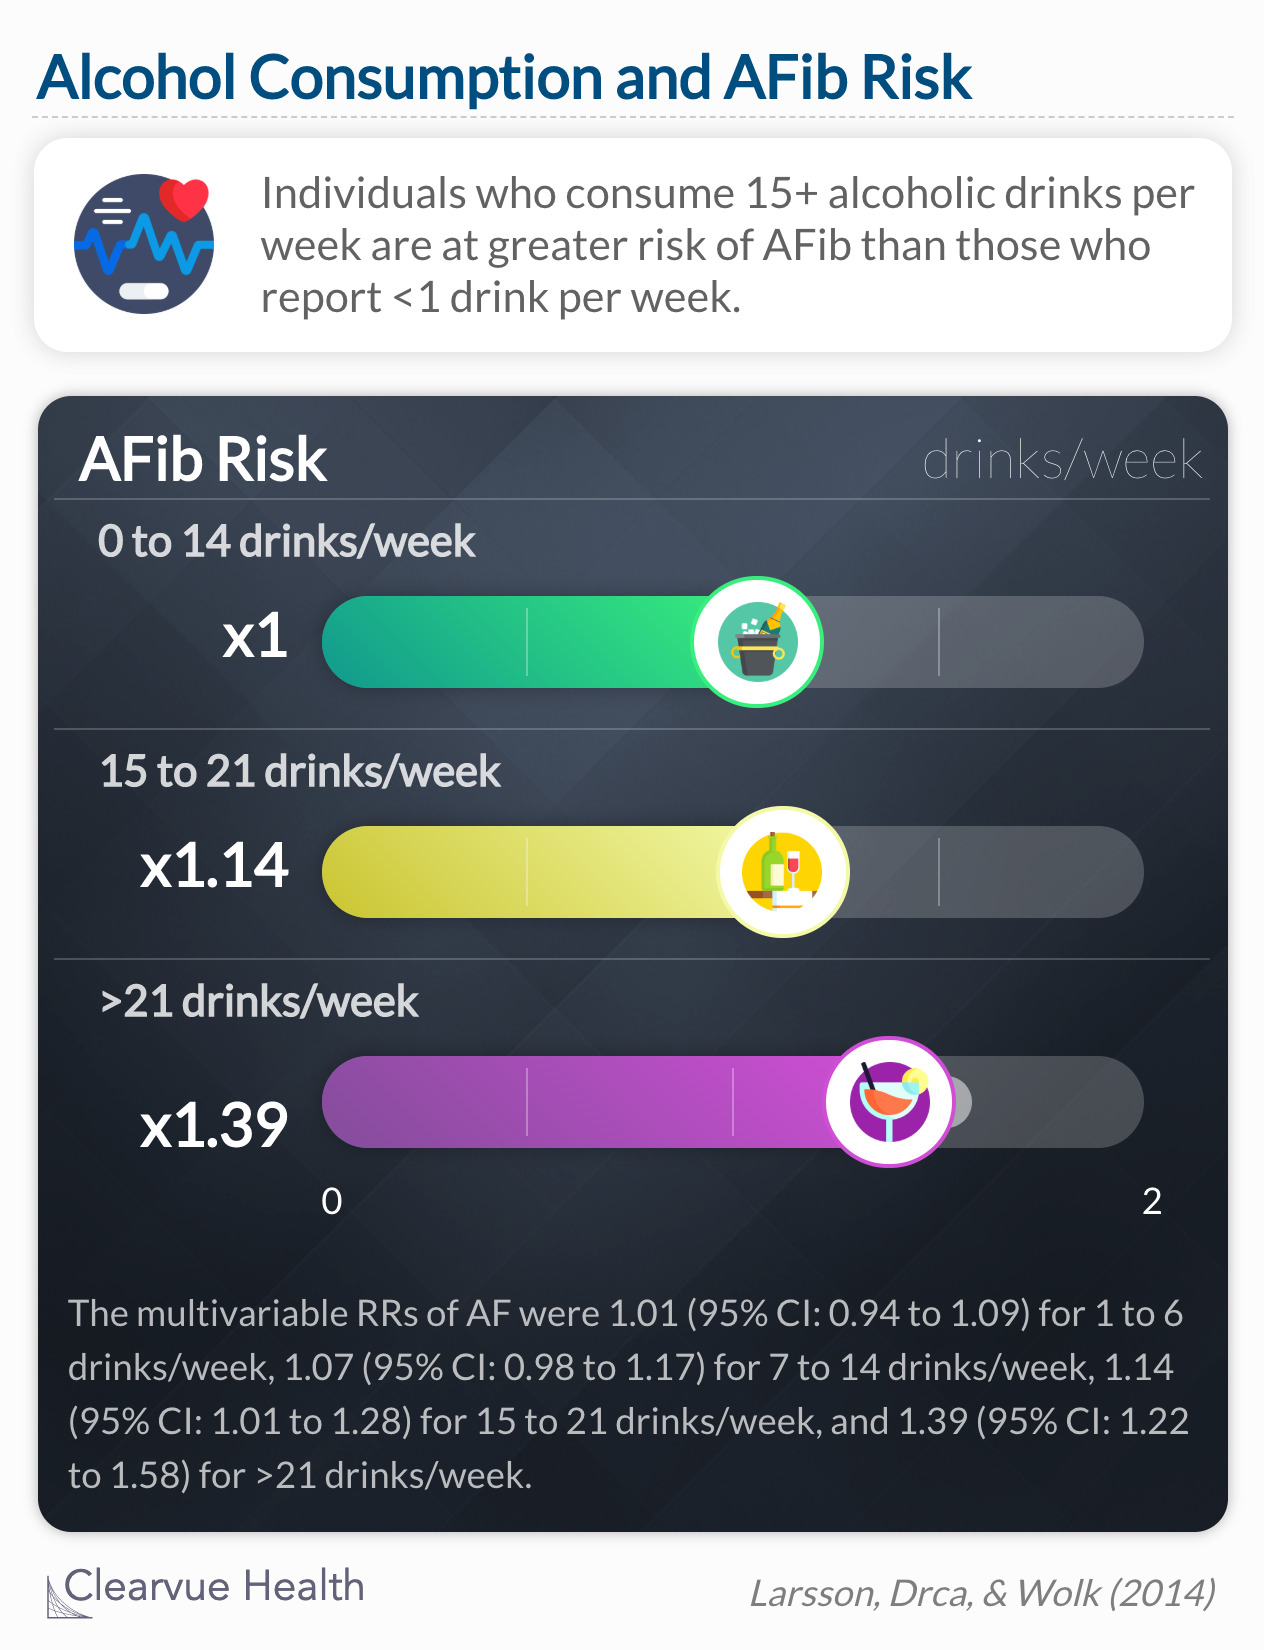 People who drink more than 15 drinks in a week are at higher risk for AFib